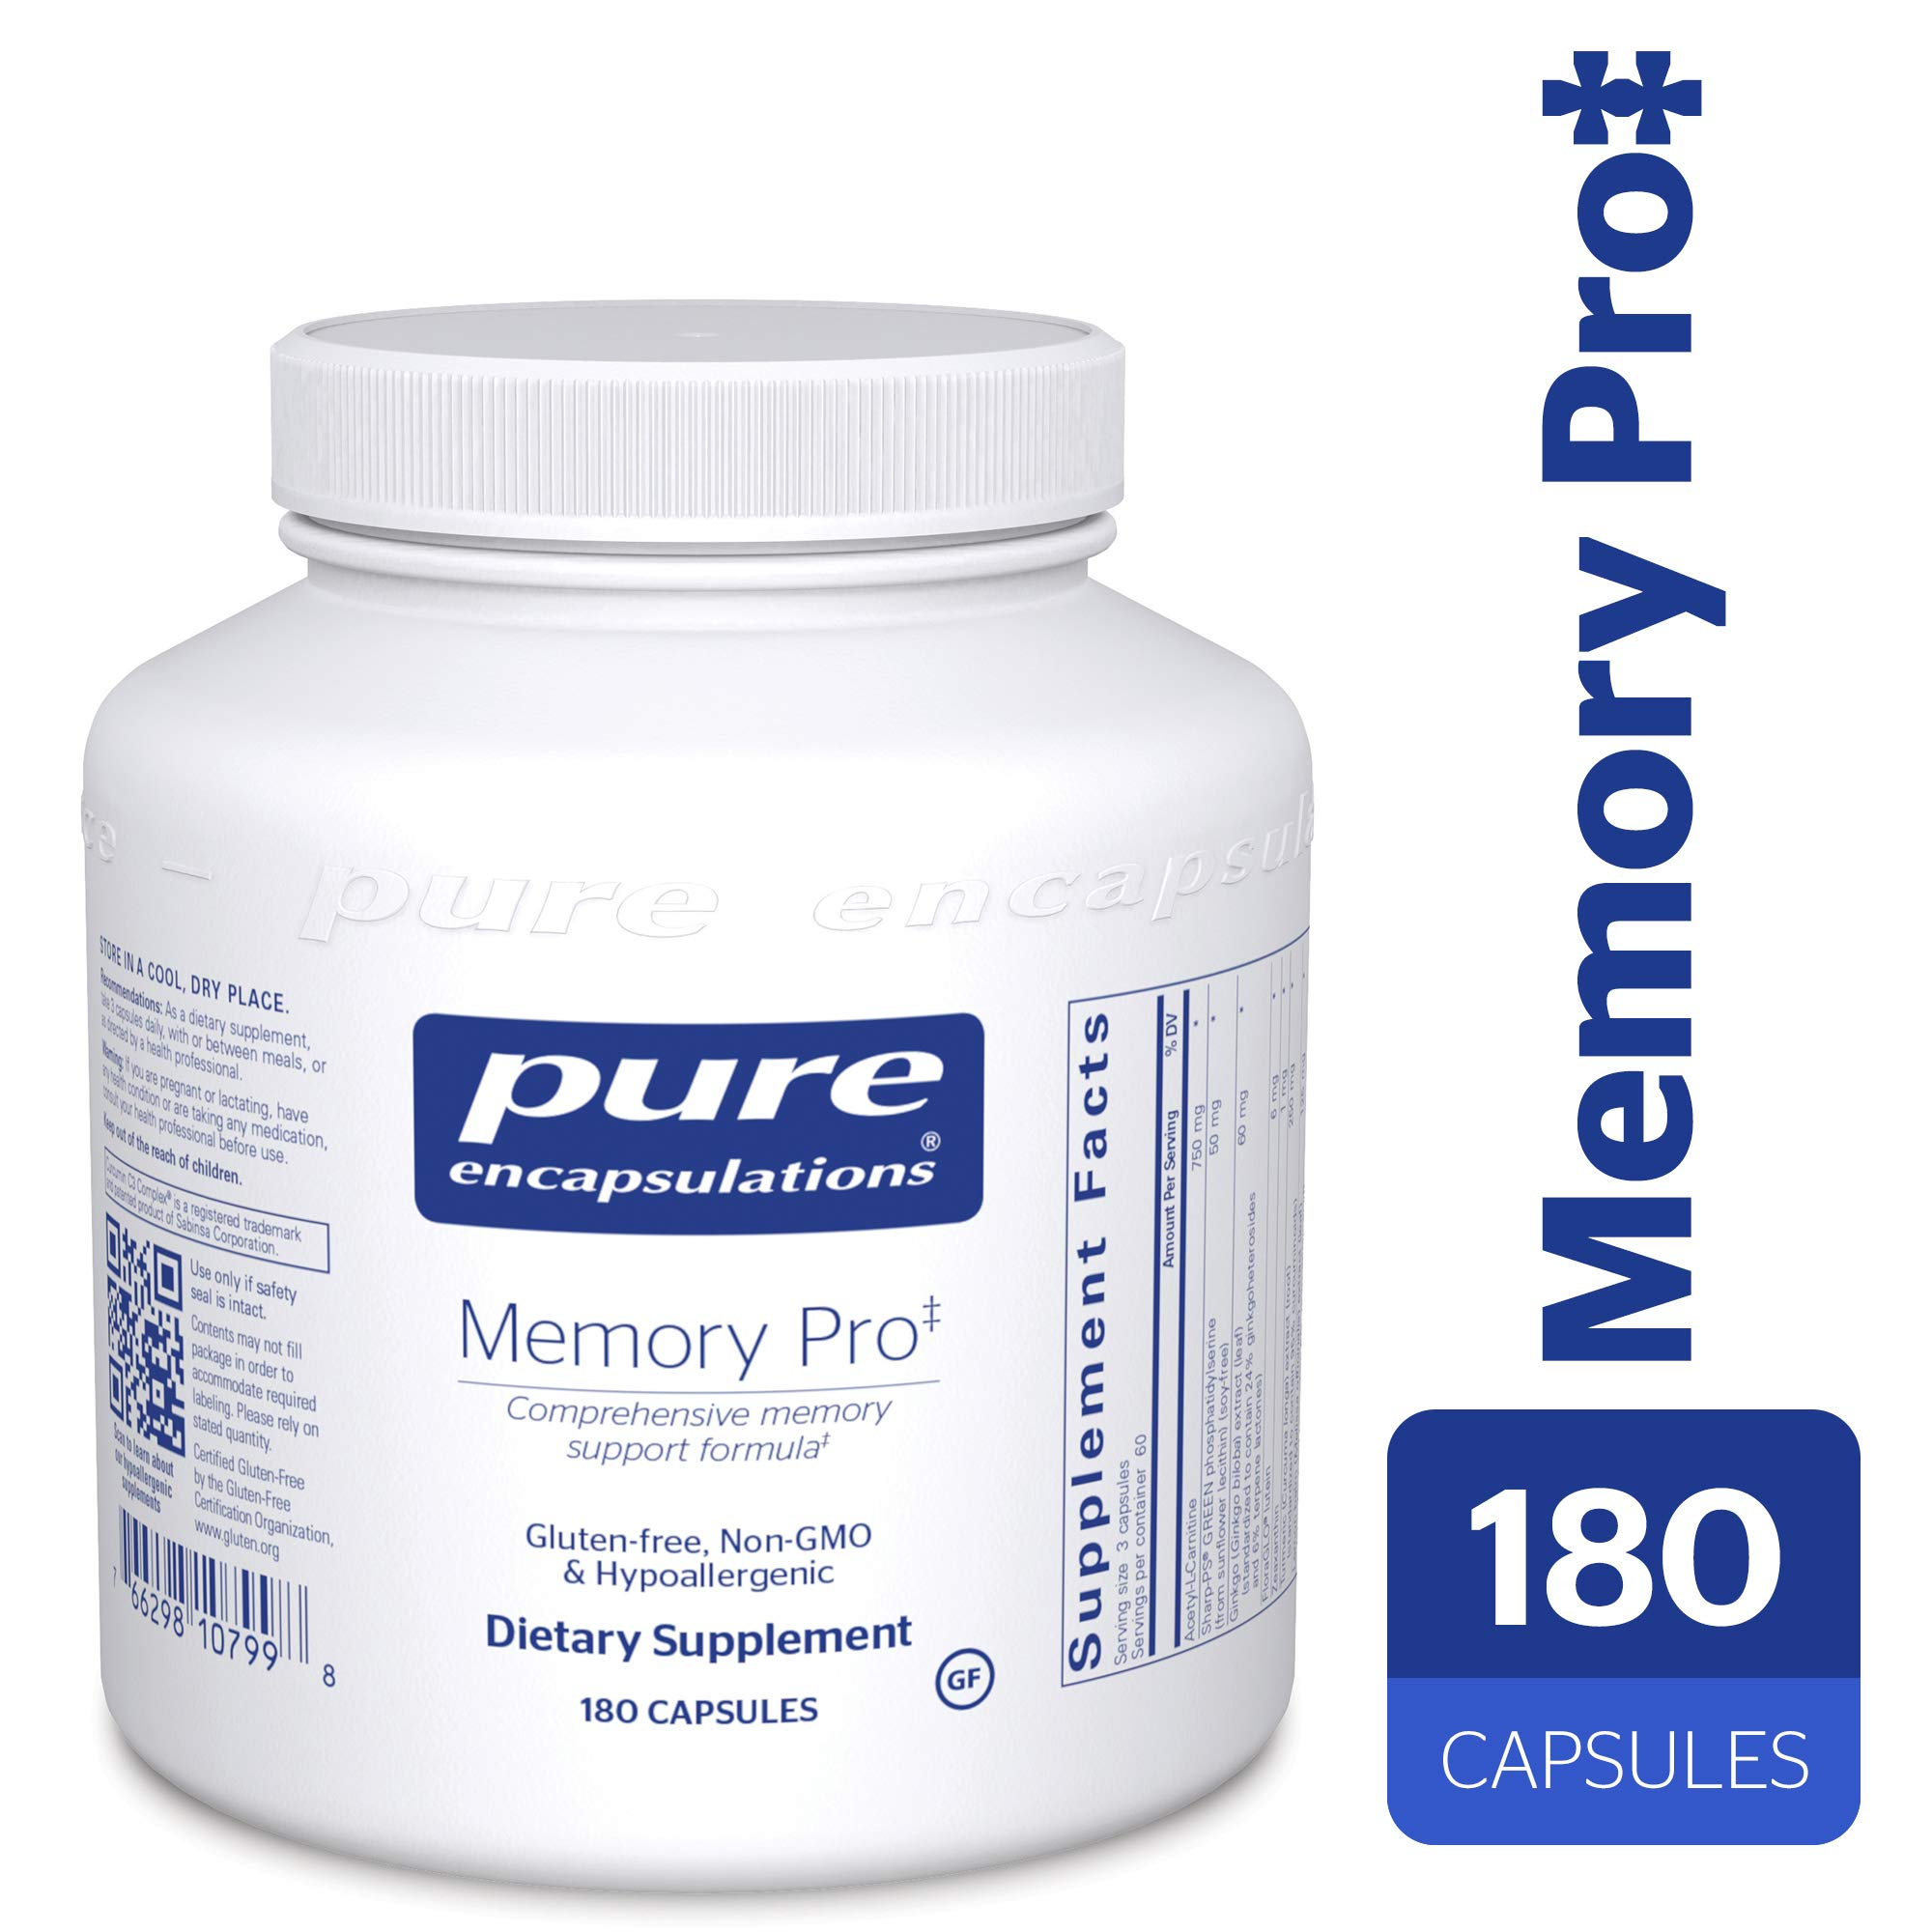 Pure Encapsulations - Memory Pro - Dietary Supplement with Broad-Spectrum Memory Support Formula* - 180 Capsules